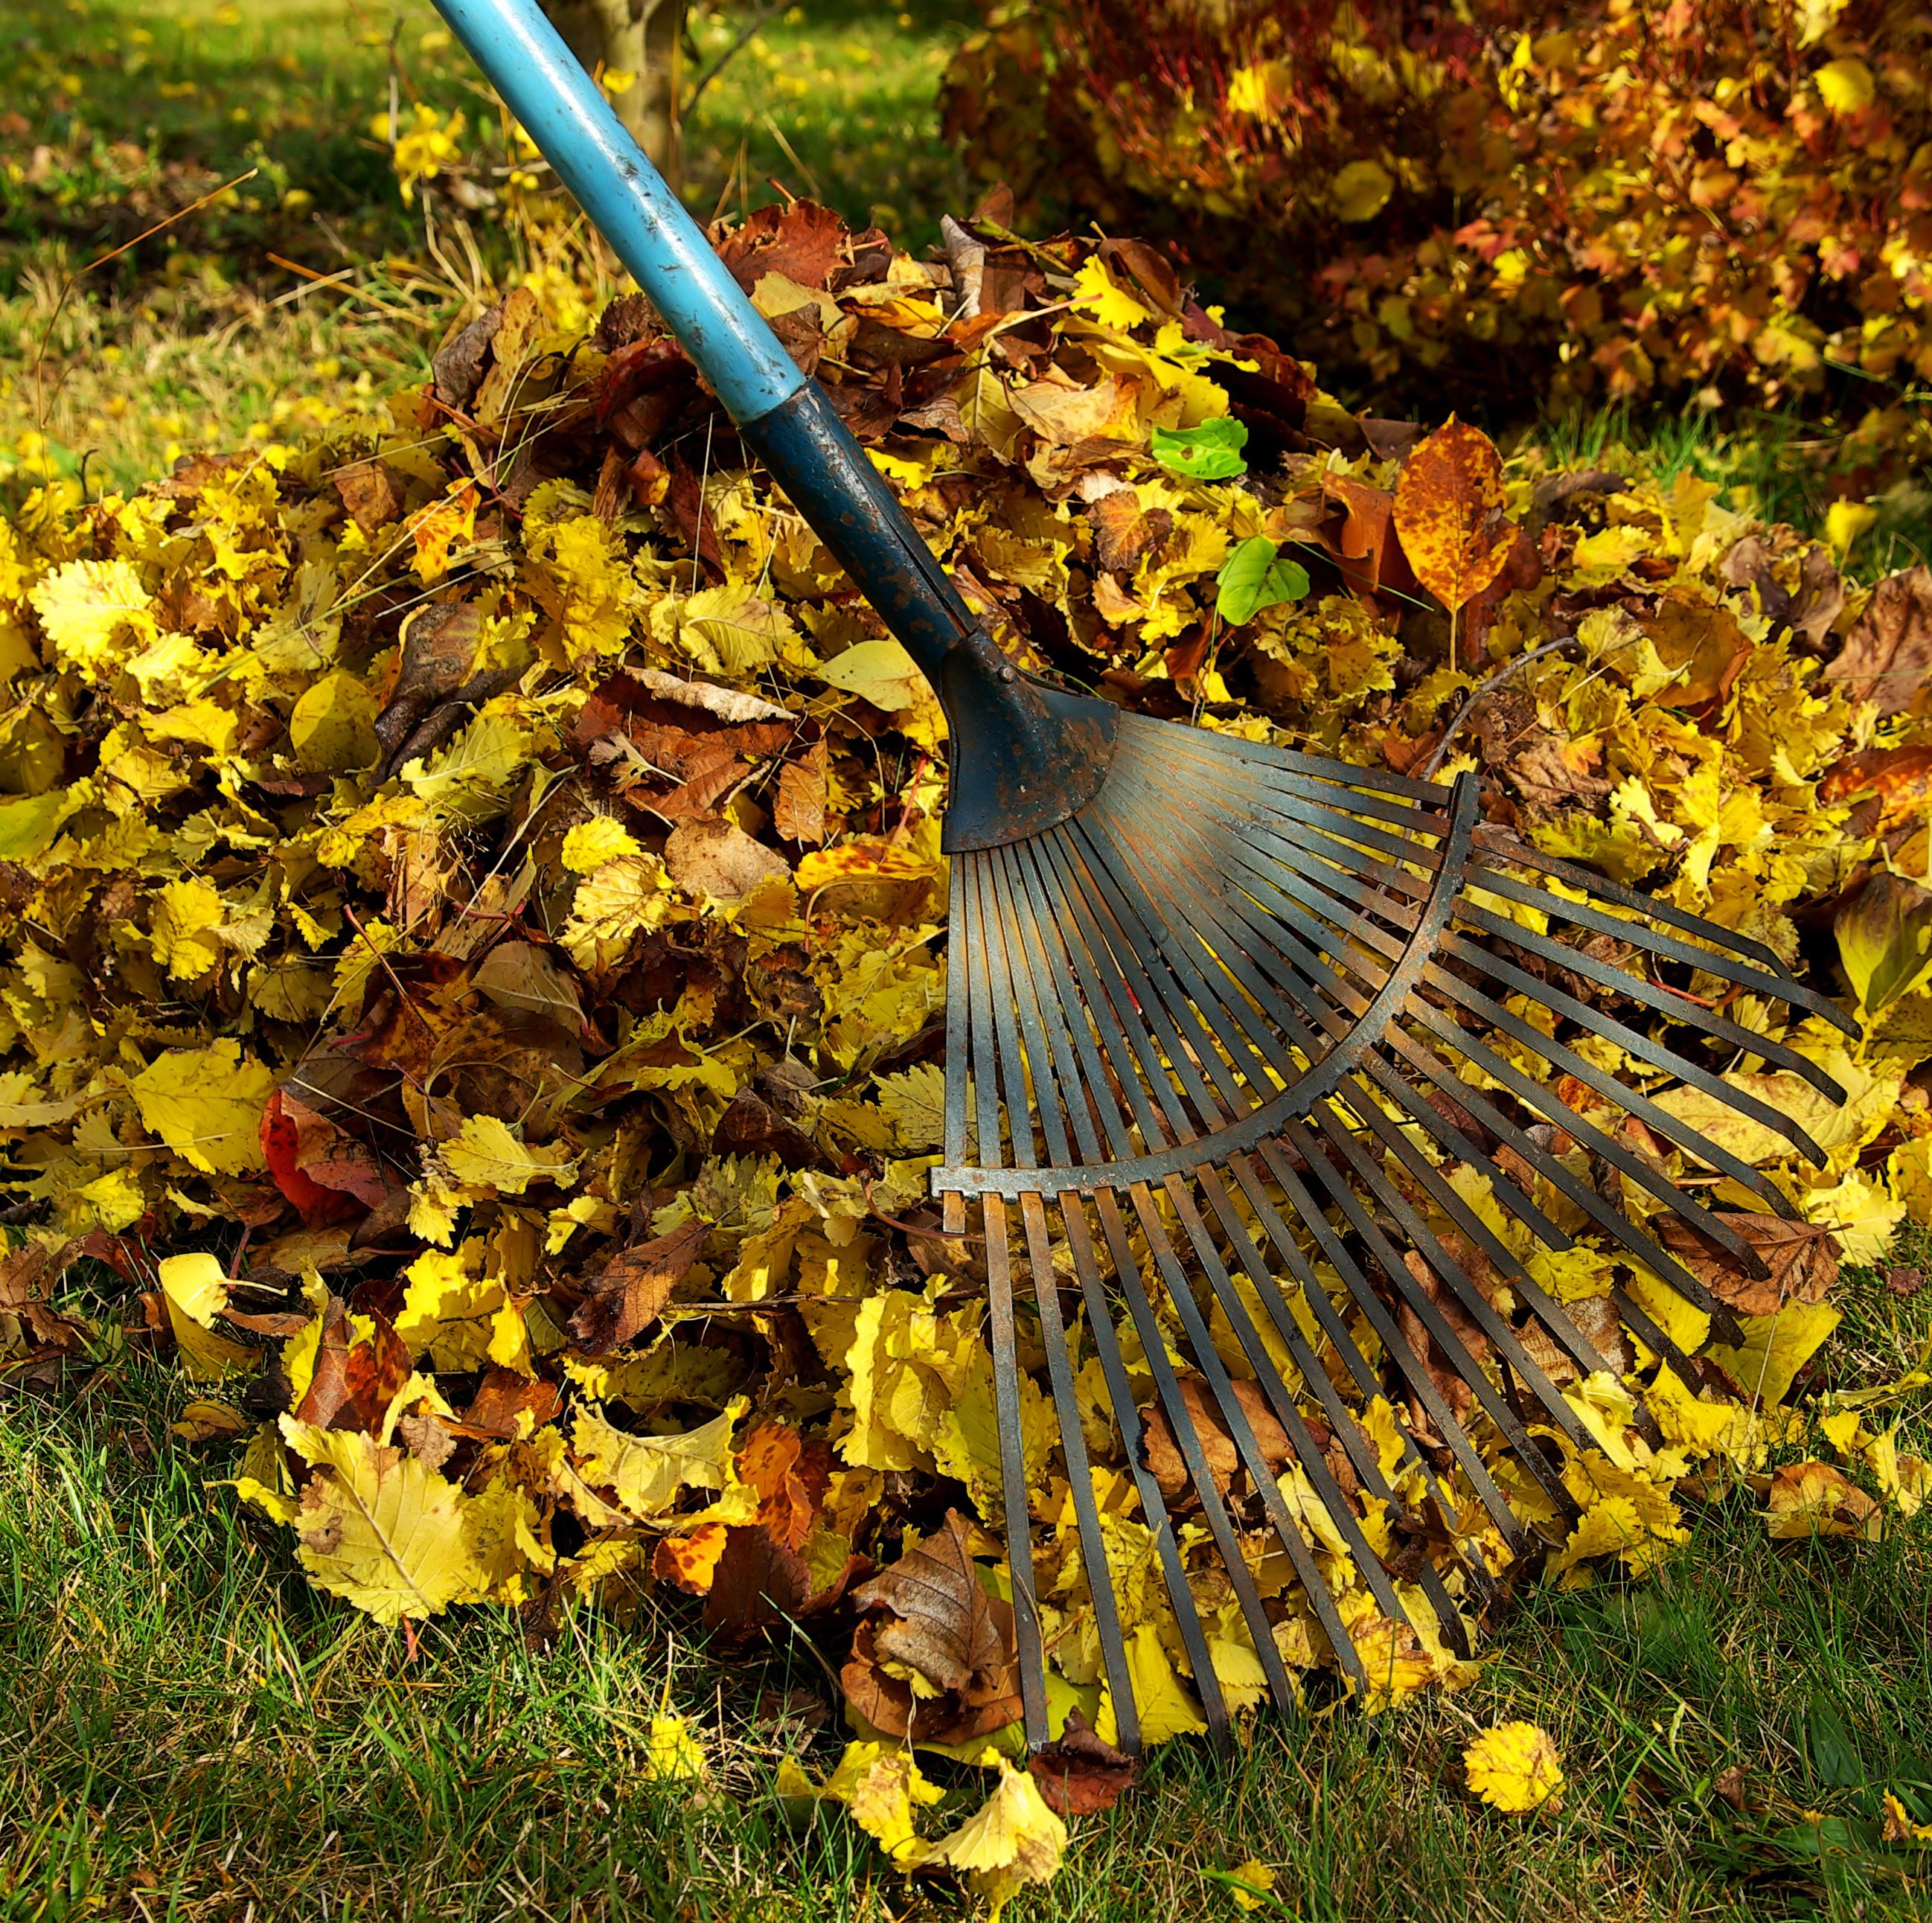 rake on pile of leaves